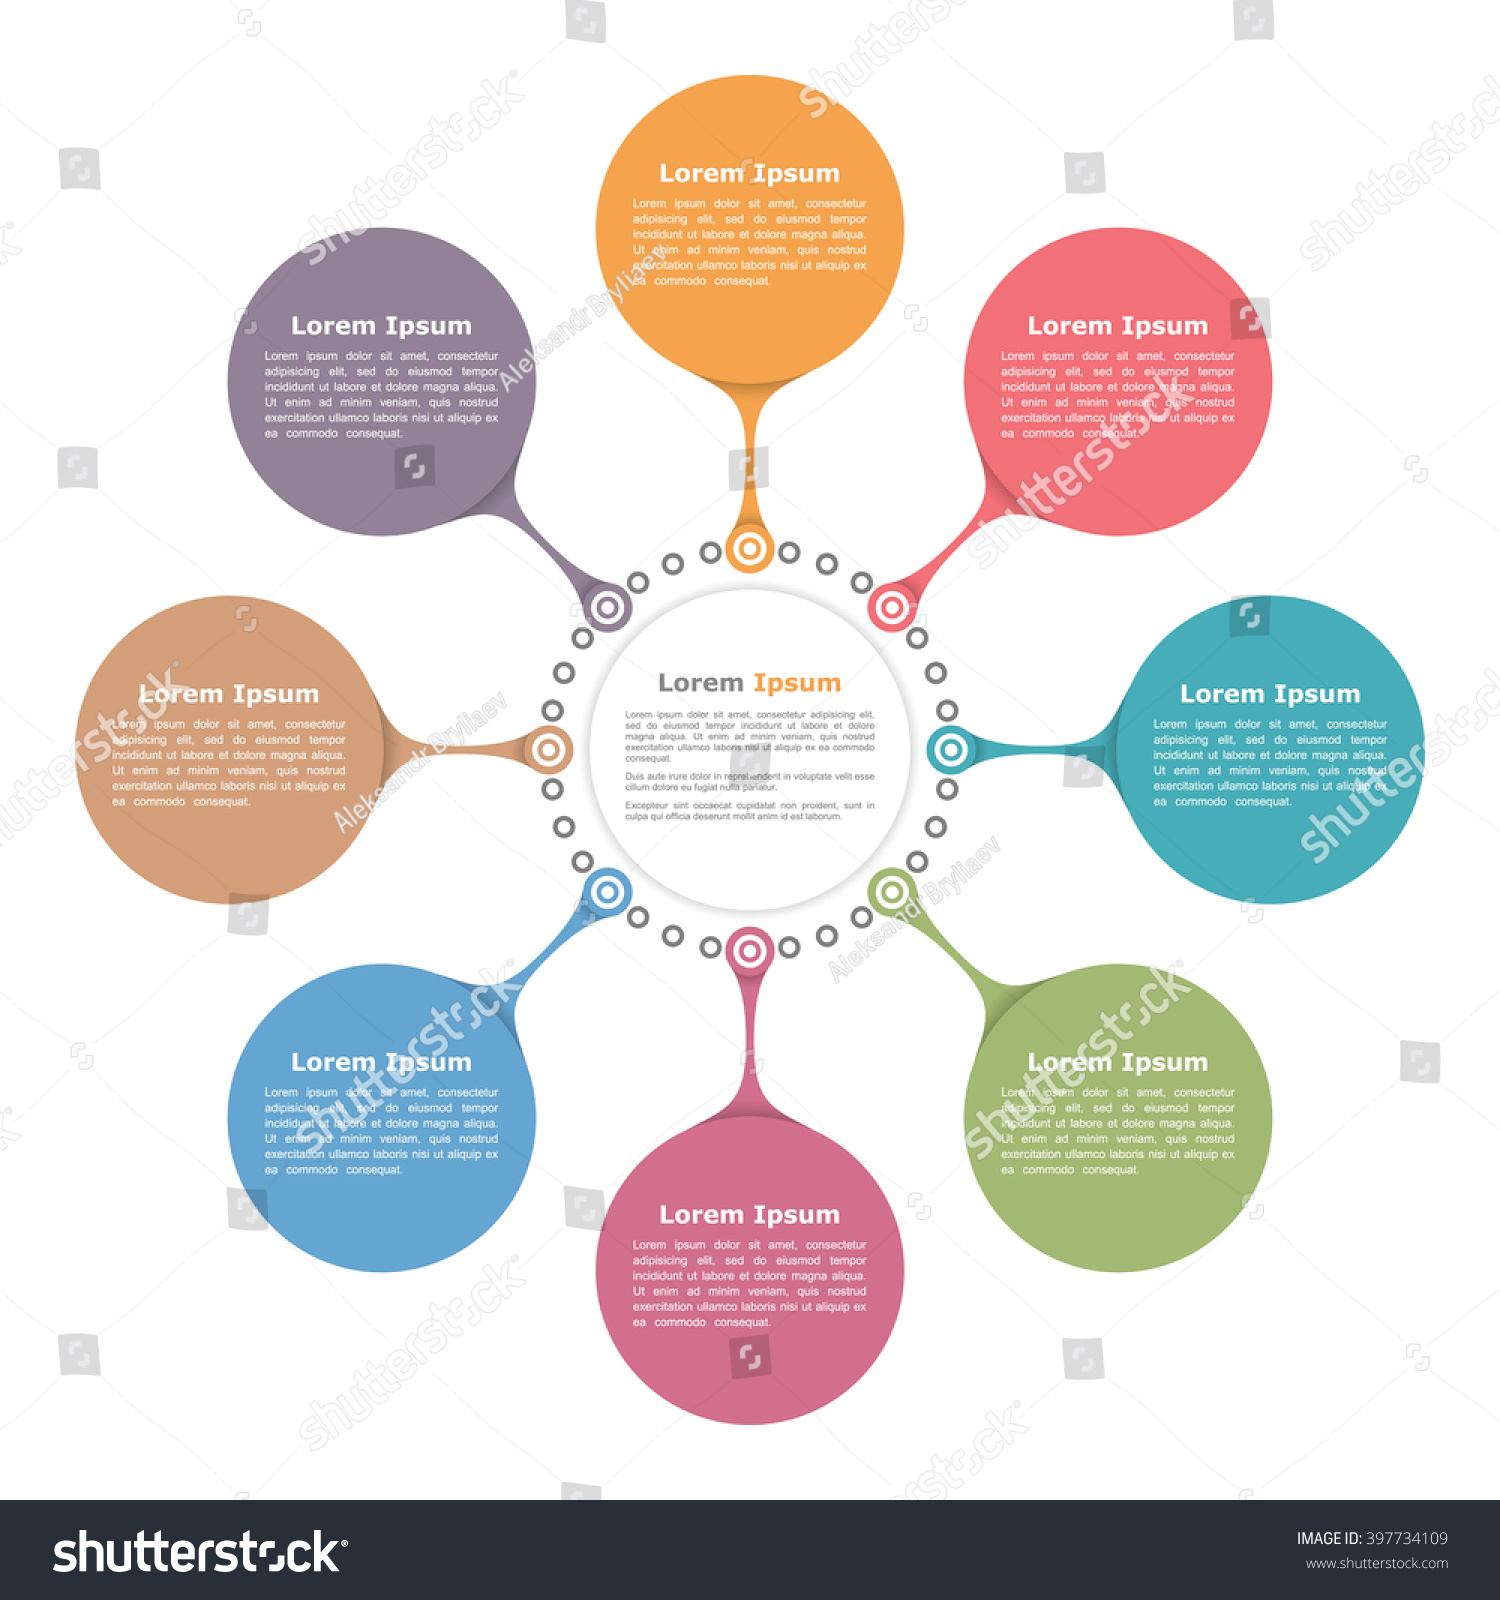 circle flow diagram template with eight elements  vector eps     circle flow diagram template   eight elements  vector eps  illustration preview  save to a lightbox